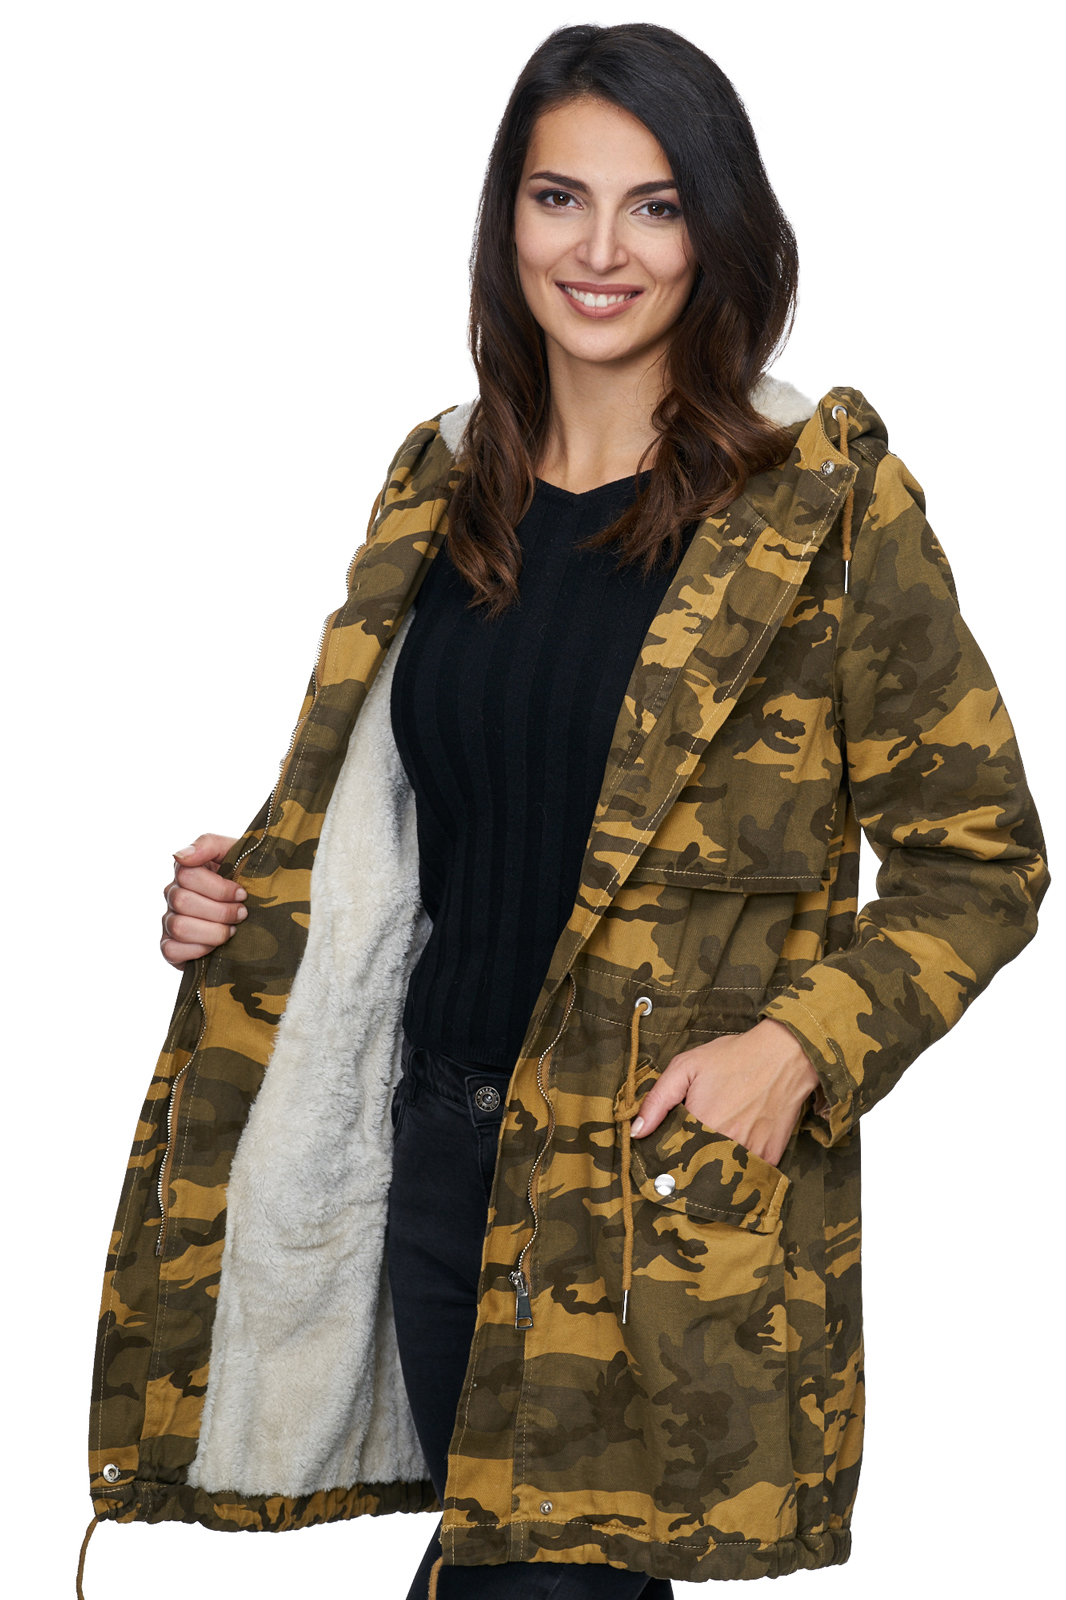 damen winter jacke camouflage mantel warm parka gr n gelb. Black Bedroom Furniture Sets. Home Design Ideas